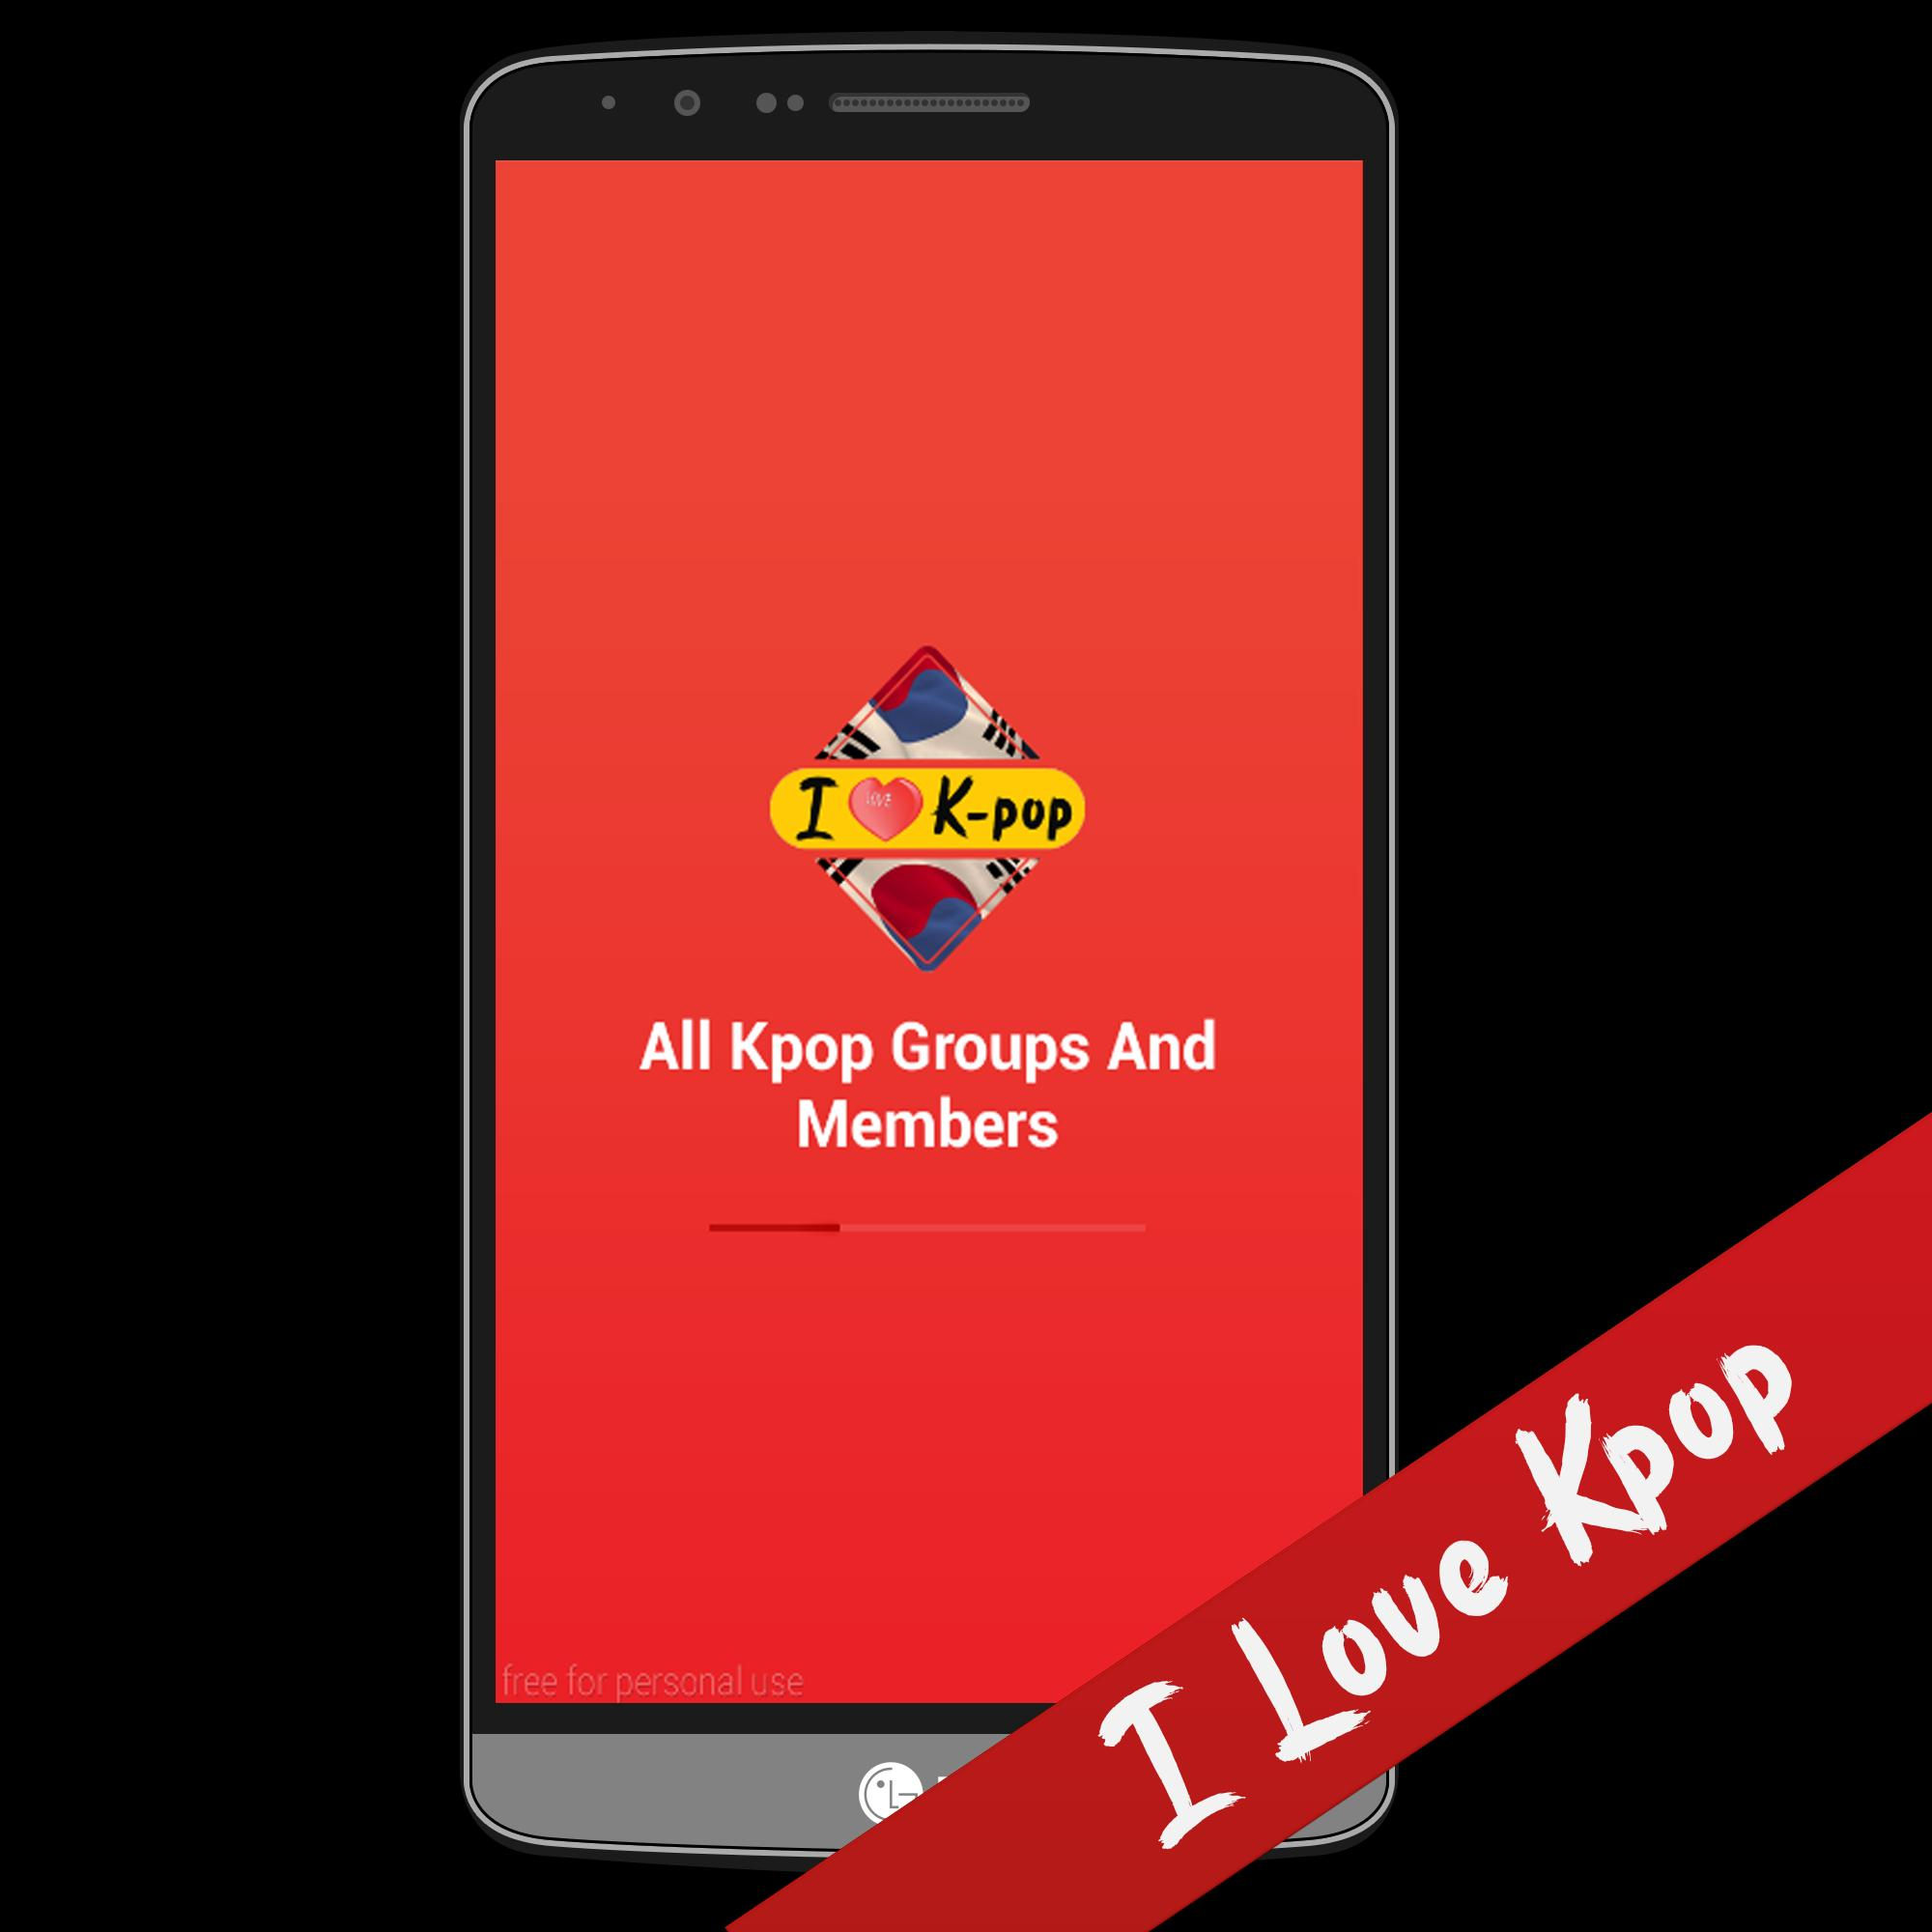 All K-pop Groups And Members for Android - APK Download